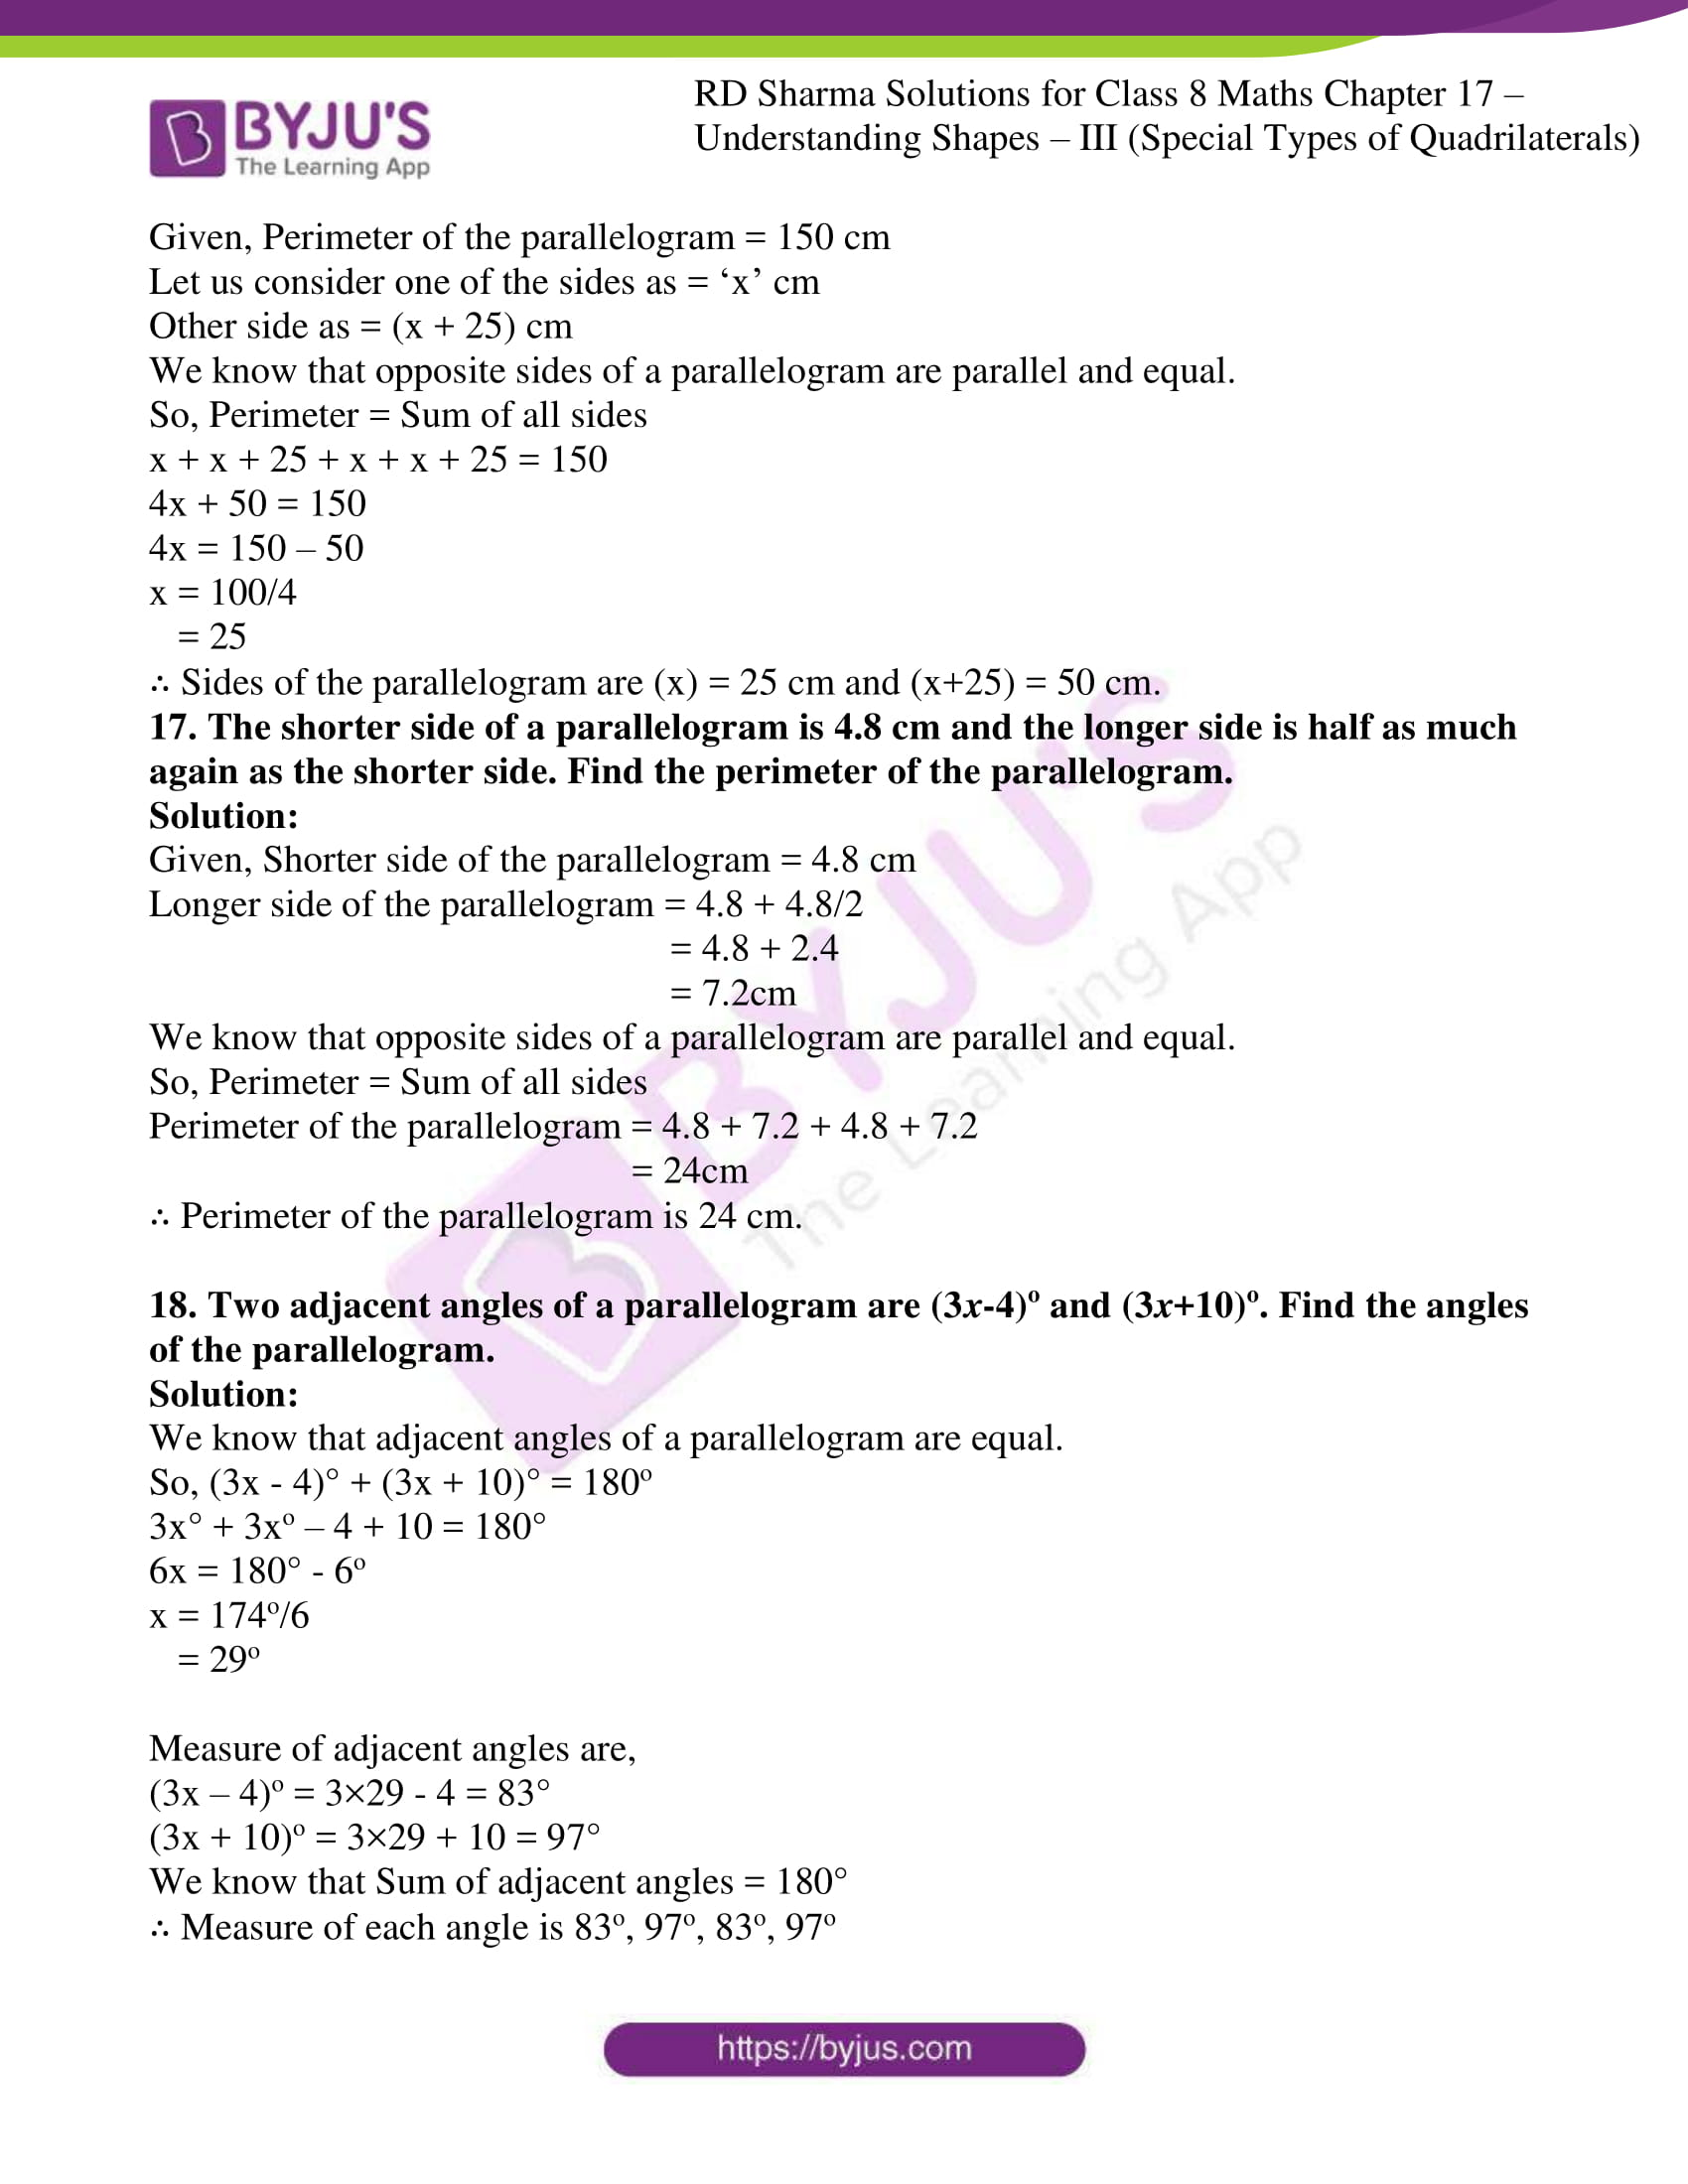 rd sharma class 8 maths chapter 17 exercise 1